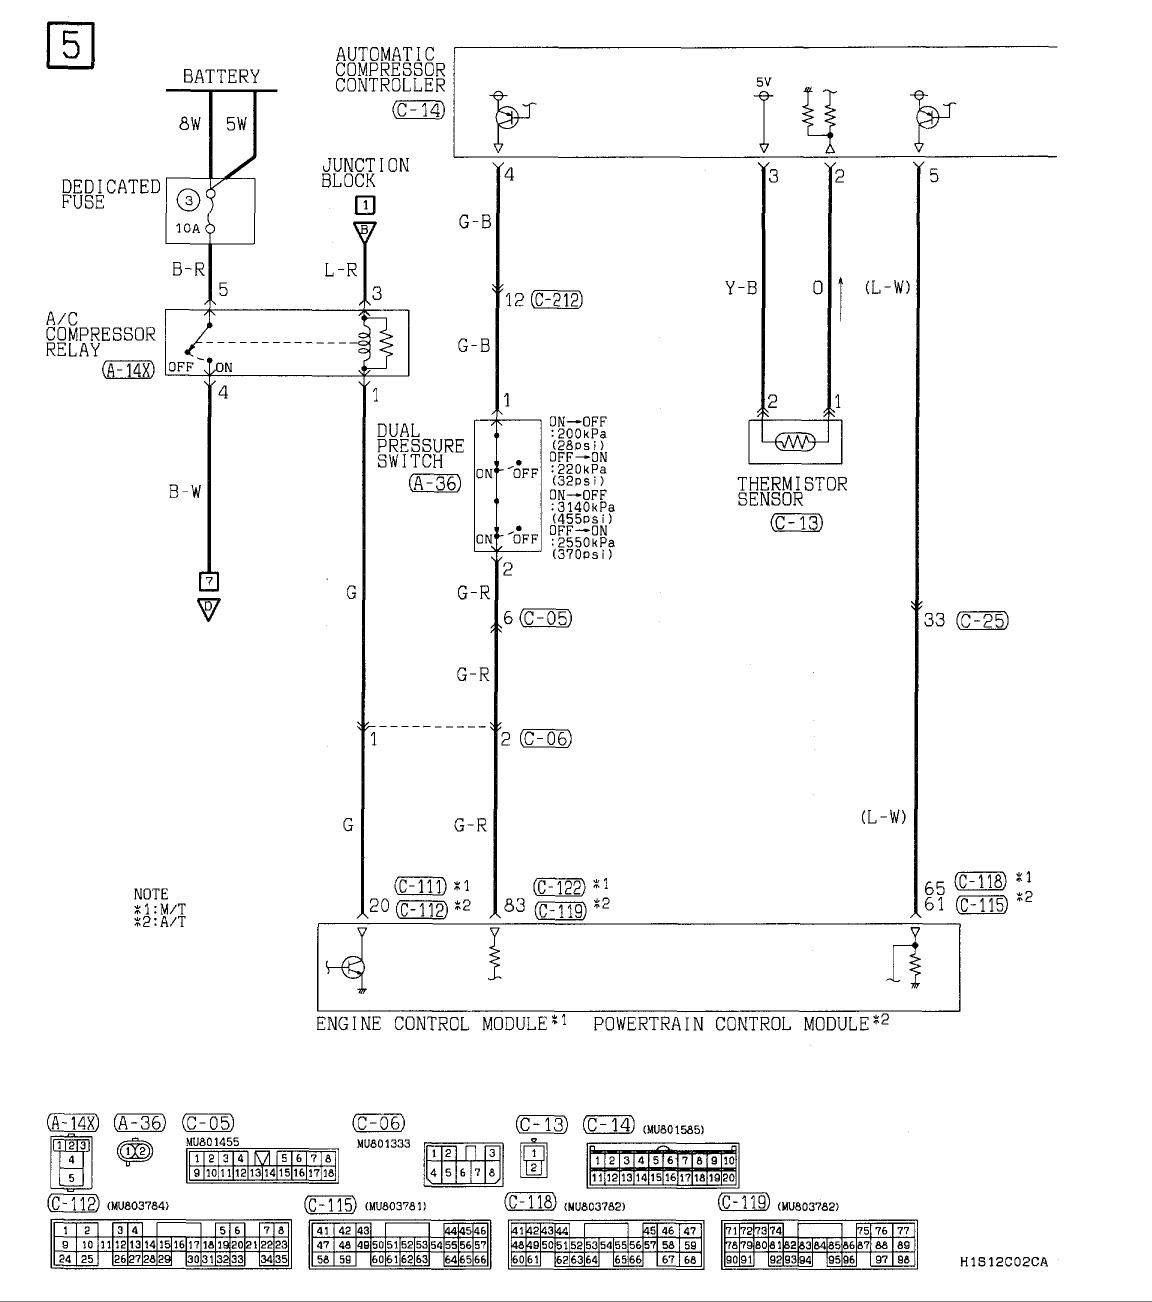 hight resolution of 2001 mitsubishi eclipse a c issues the car is titled as a 2001 mitsubishi eclipse wiring diagram mitsubishi eclipse ac diagram